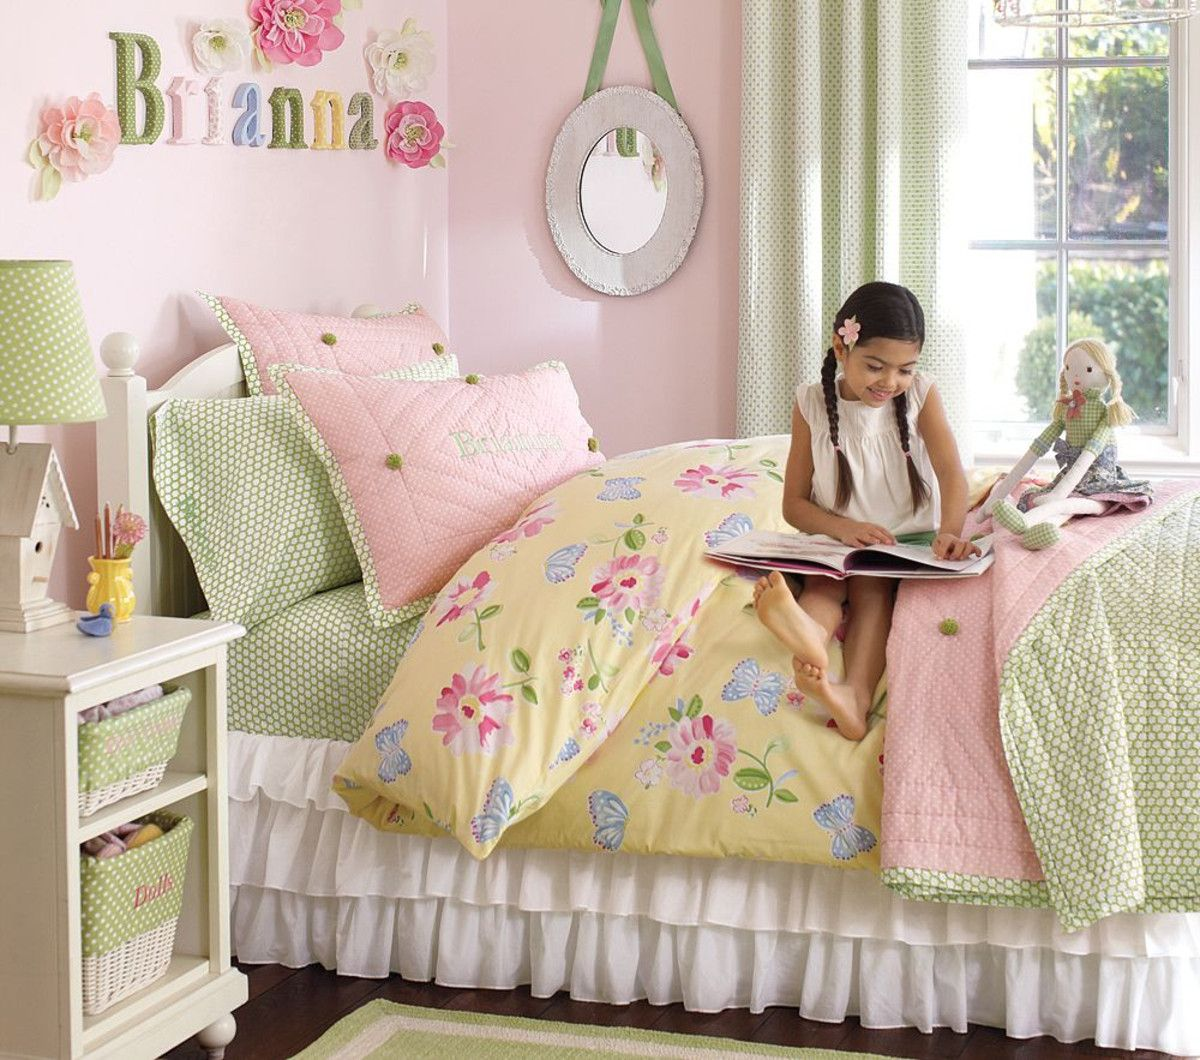 Pottery Barn Kids Bedroom Furniture Catalina Bed Pottery Barn Kids Australia Girls Bedrooms